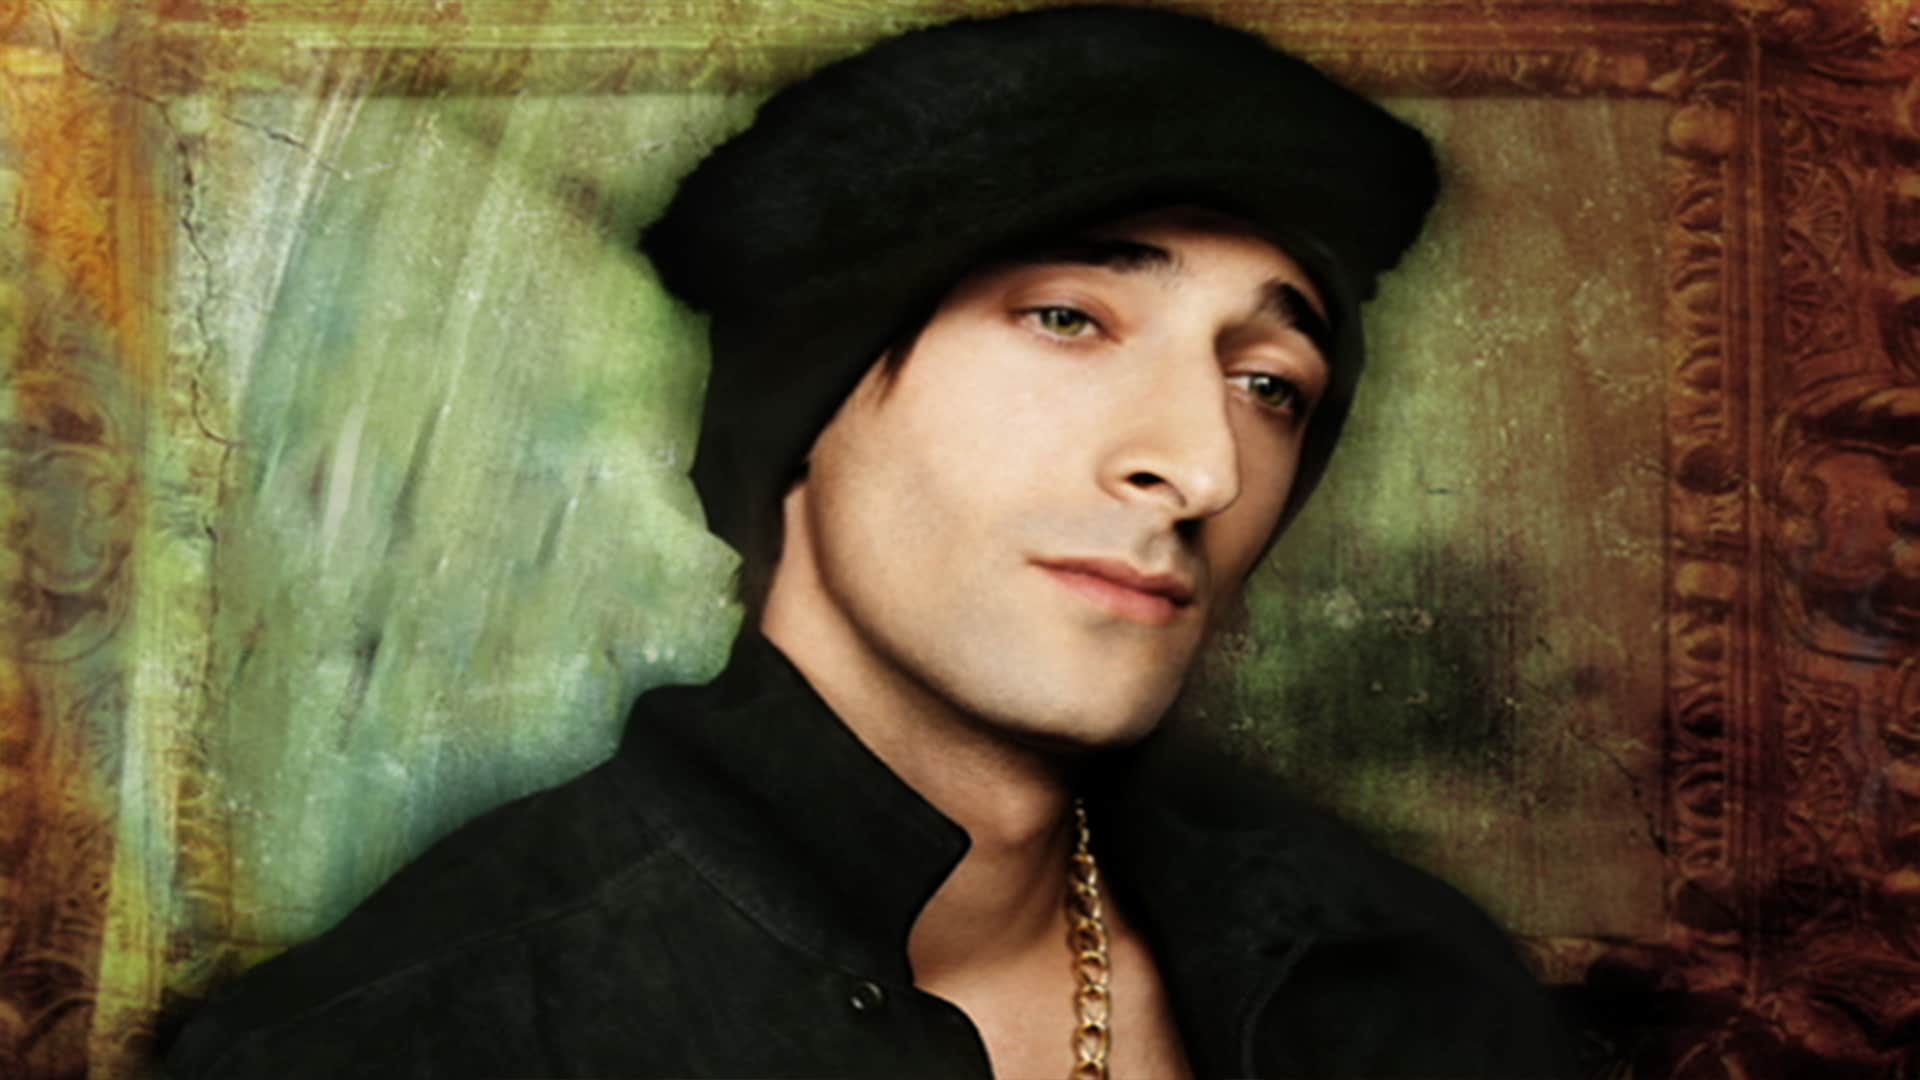 Adrien Brody: May 10, 2003